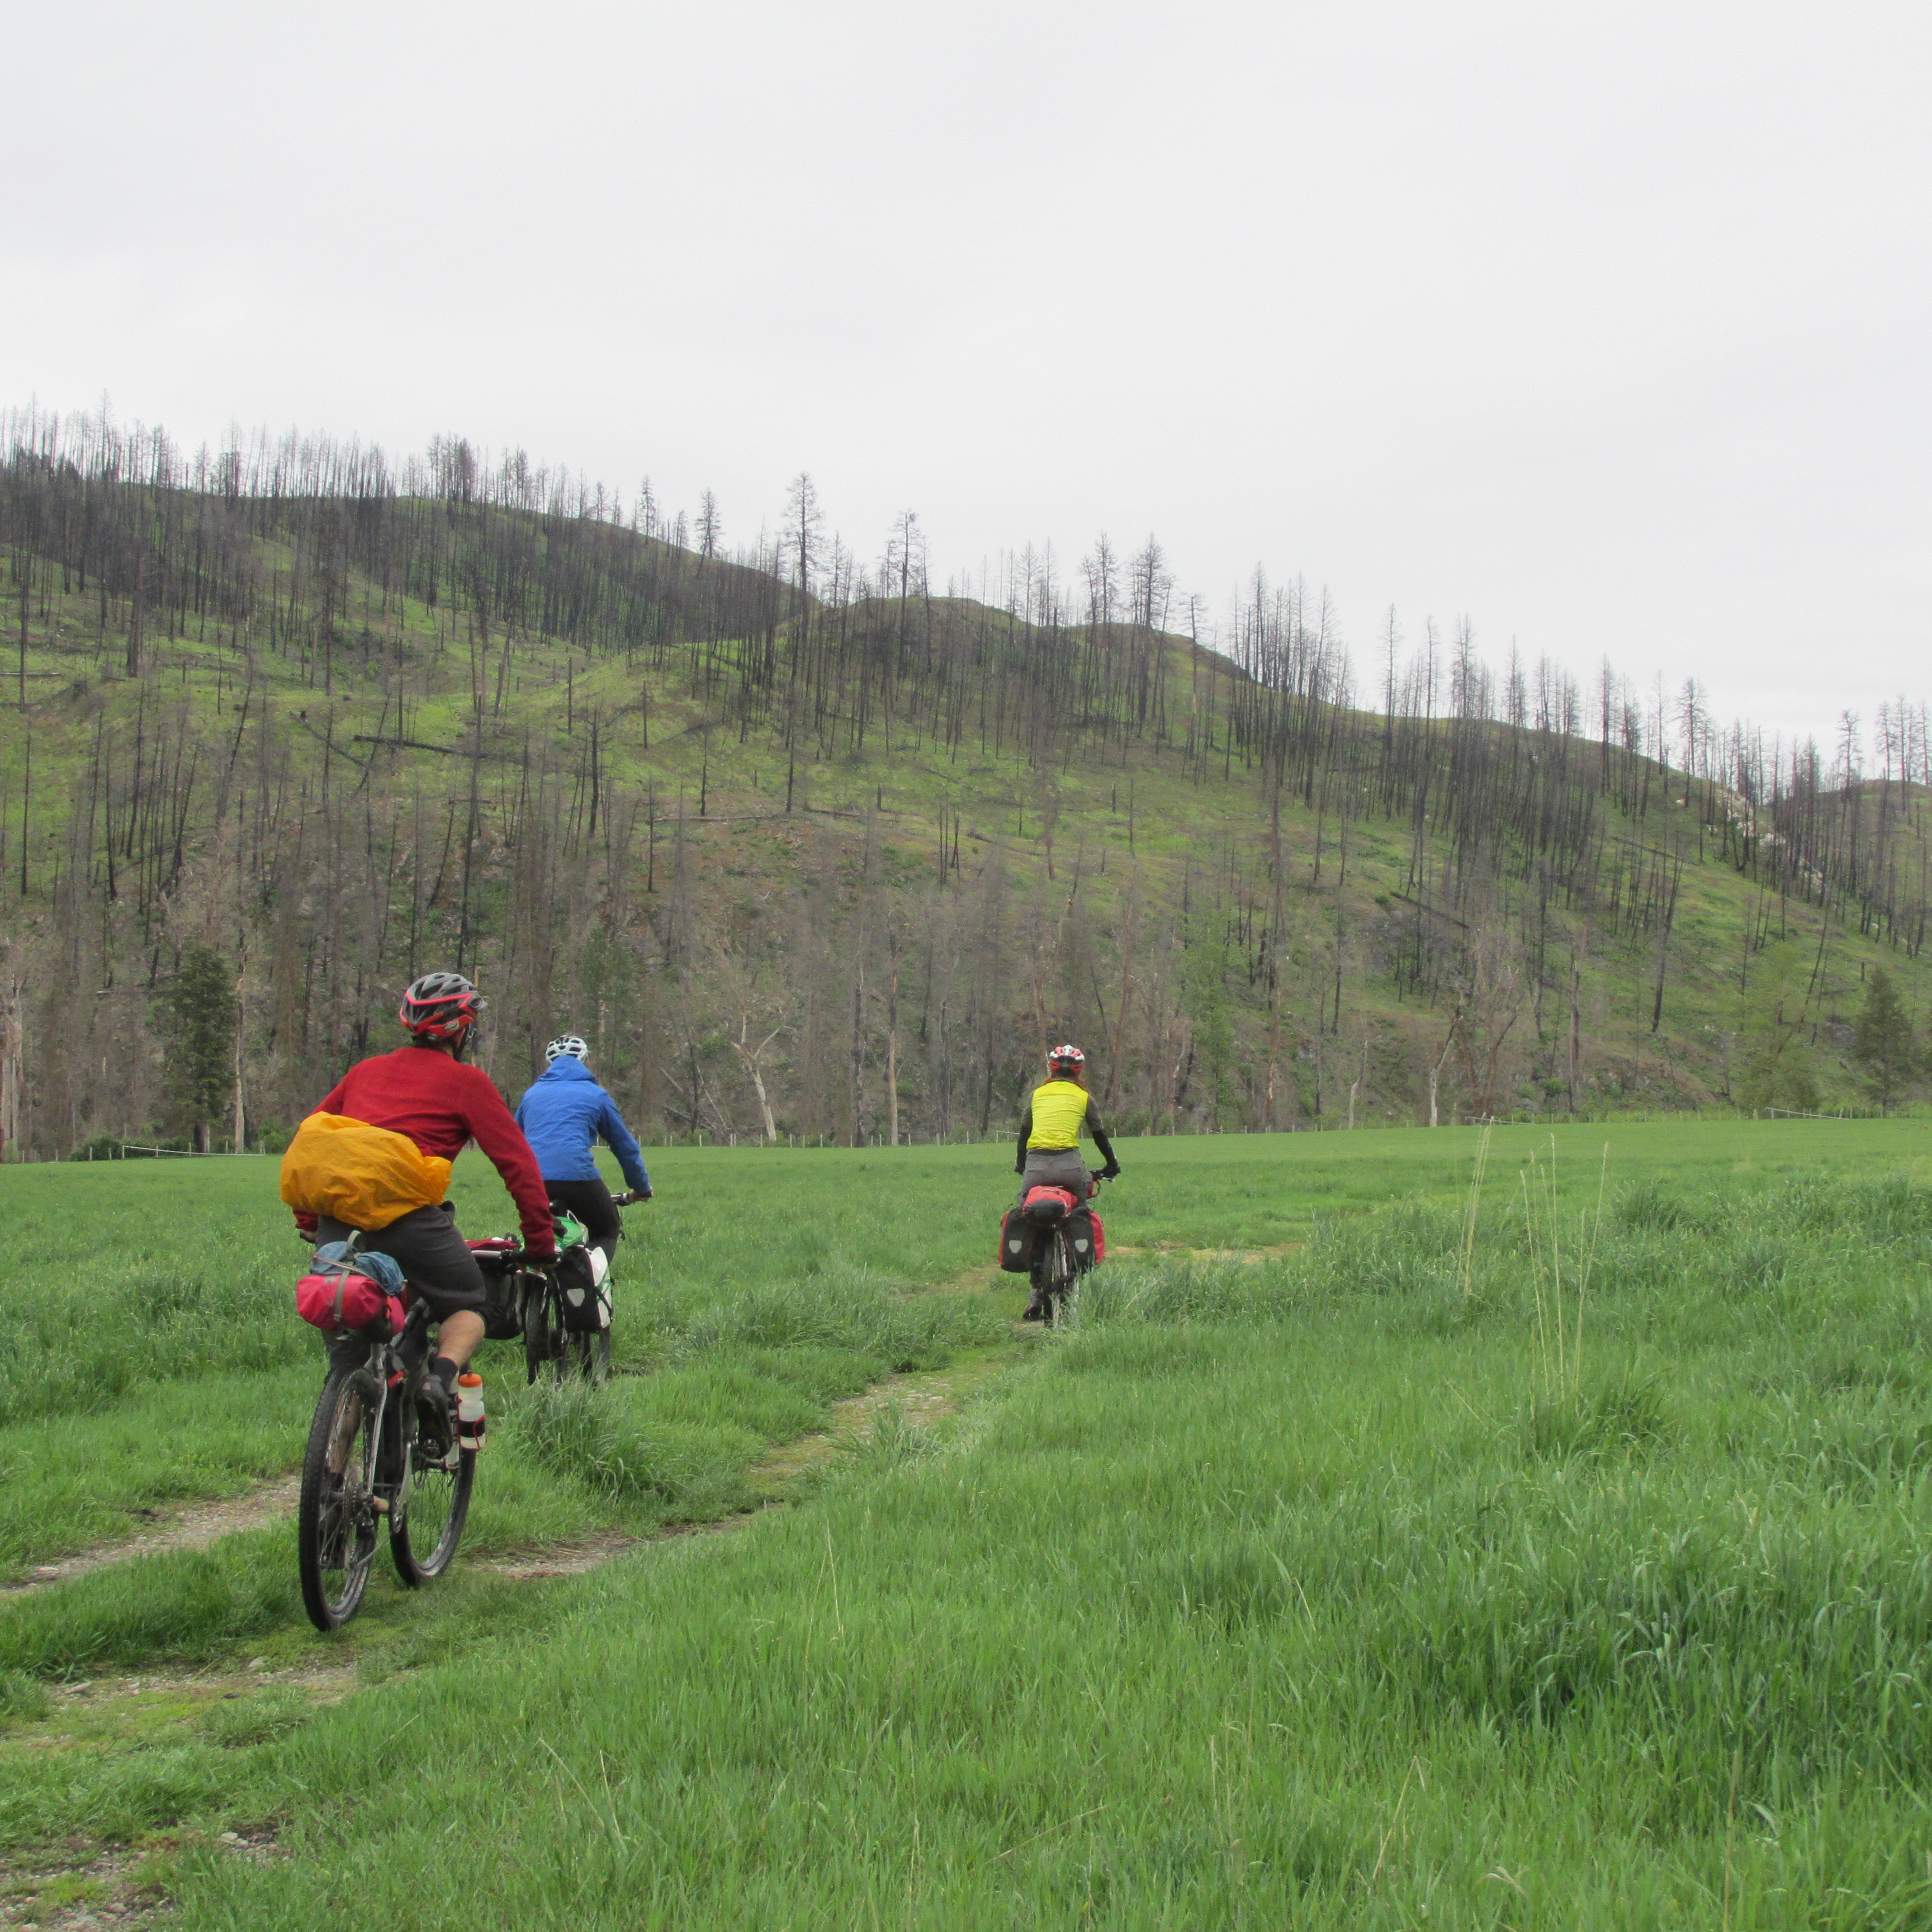 Fun riding along farmfields through the KVR right-of-way. Photo by Elliott Skierszkan.